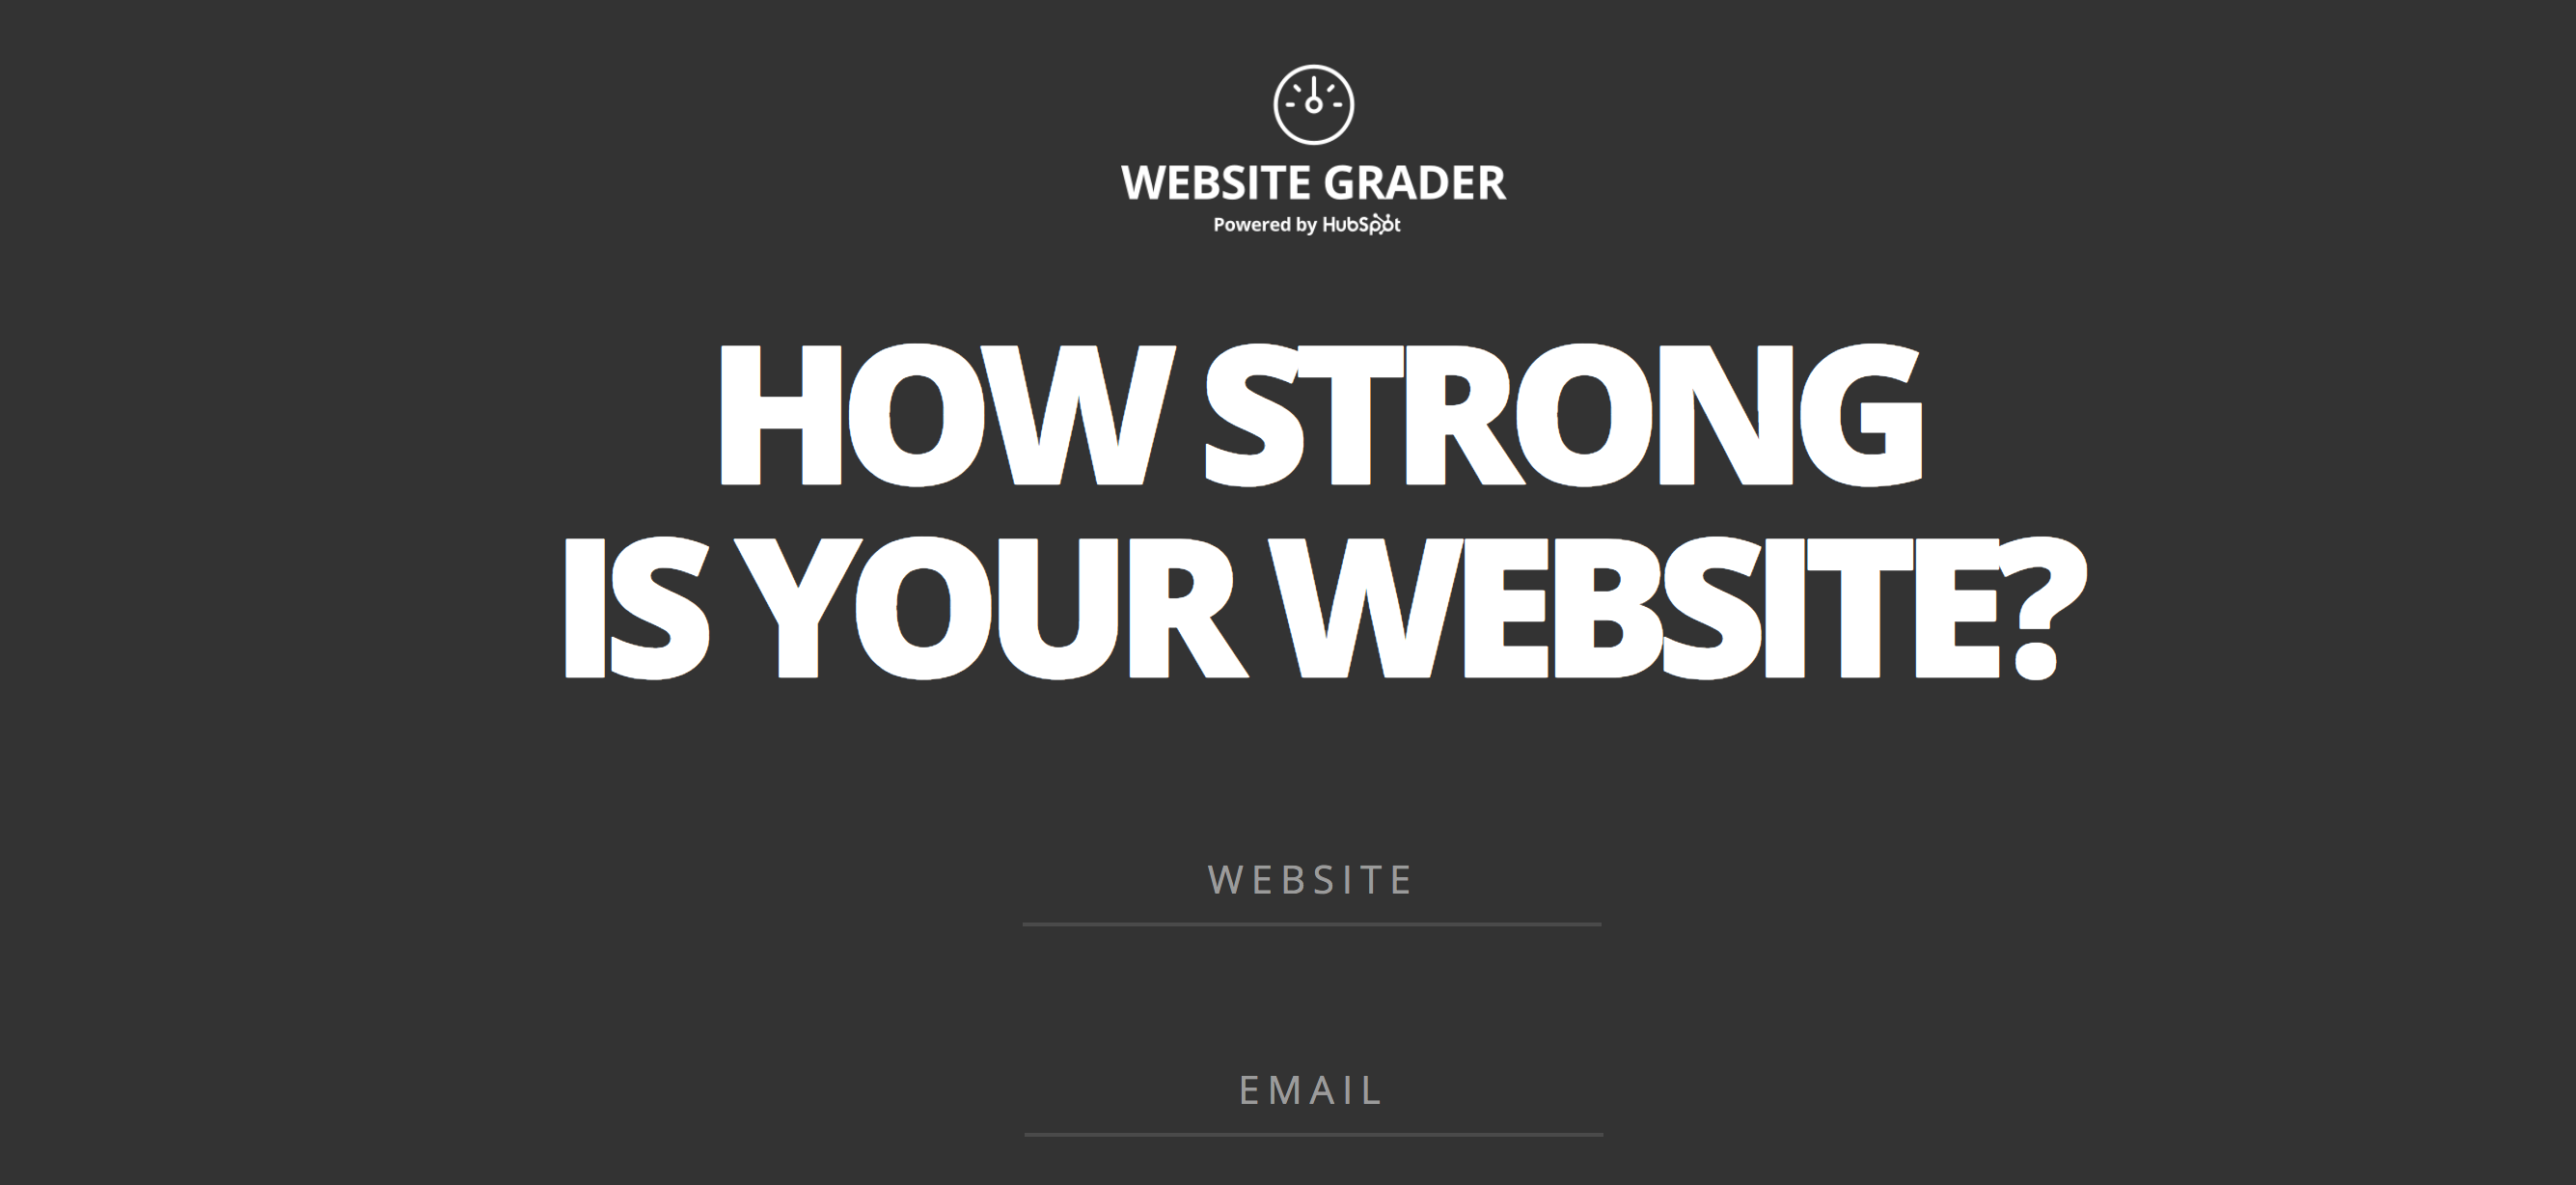 how strong is your website